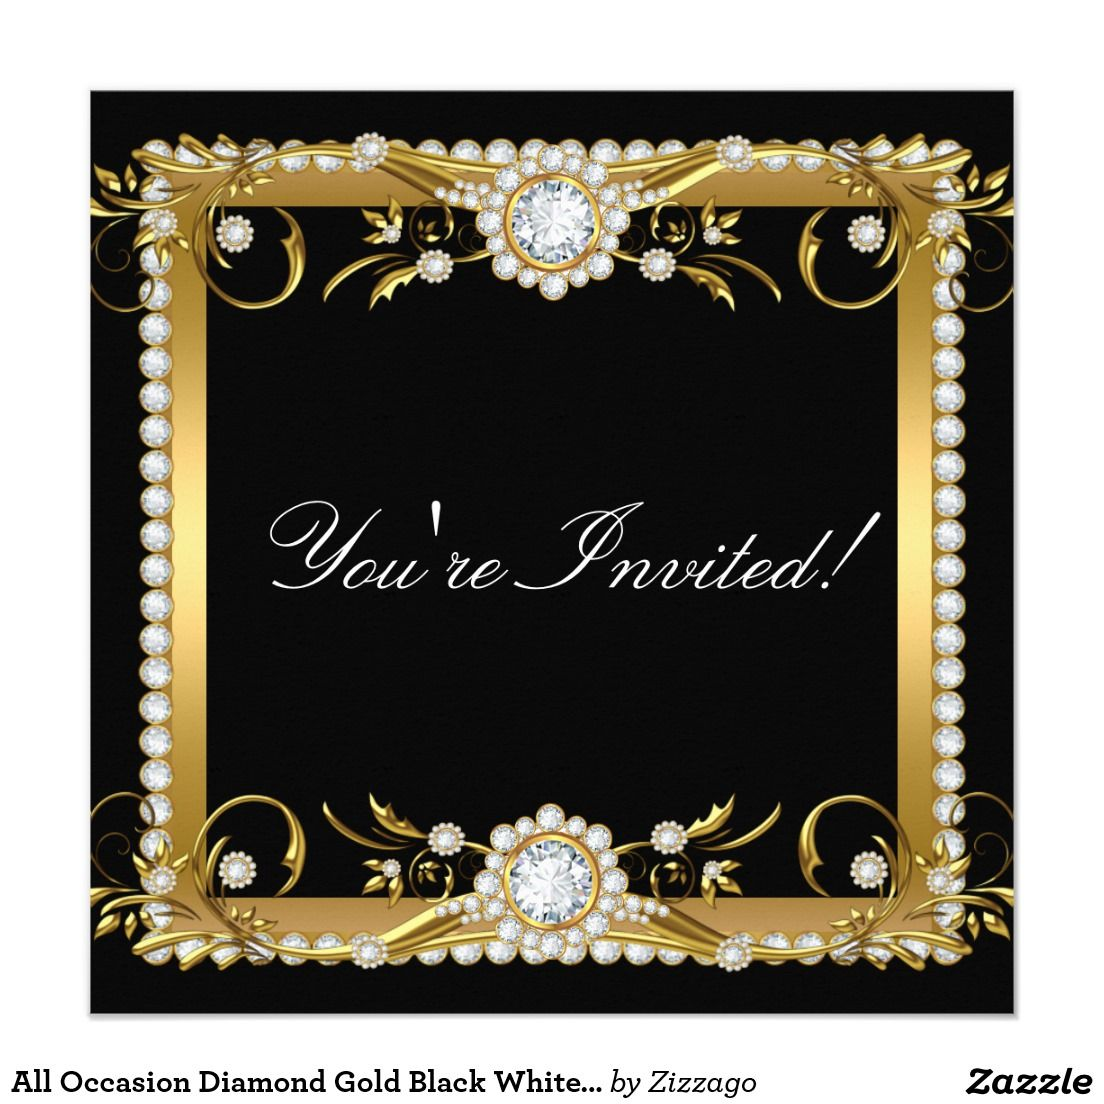 All Occasion Diamond Gold Black White Floral Party Invitation   Zazzle.com  (With images)   Party invitations, Birthday party invitations, Bridal  shower party invitations